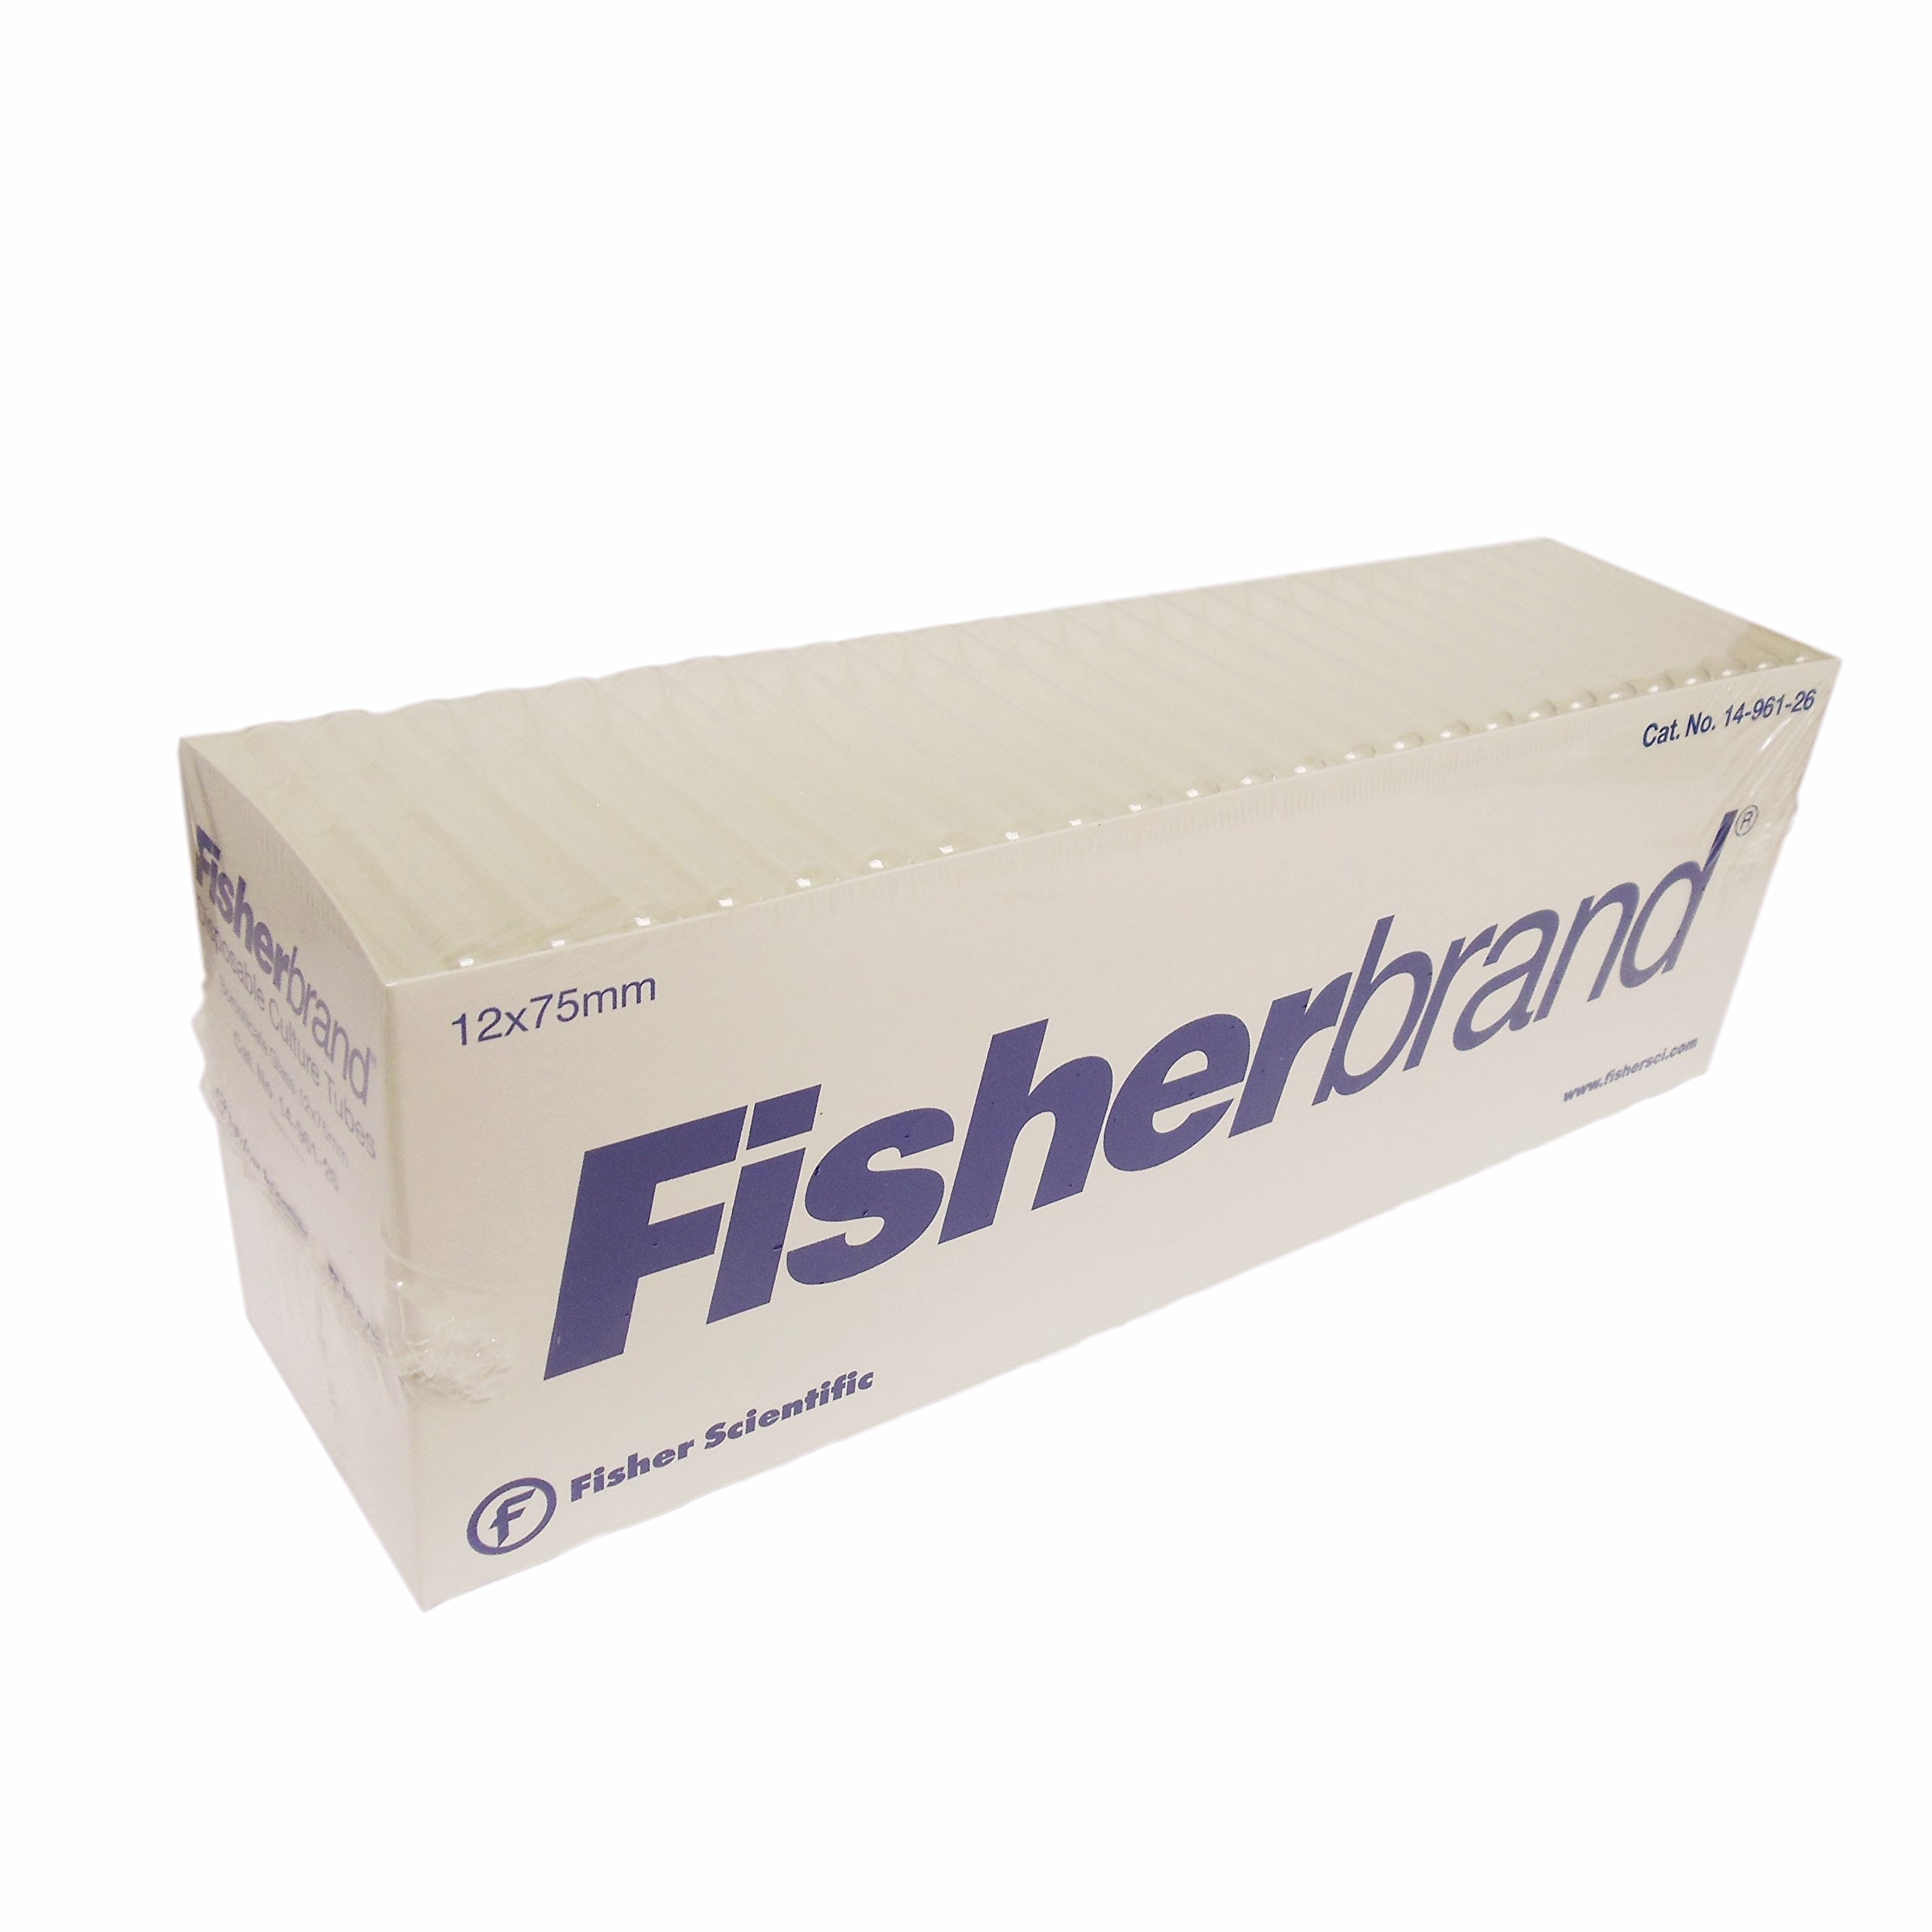 Fisherbrand Scientific Disposable Culture Tubes, Round Bottom, Plain End, Borosilicate Glass, (Outside Diameter) 12 X 75mm , (Cat No.) 14-961-26, 250 Count, 12x75mm, 4 Boxes (1000 Total Count)